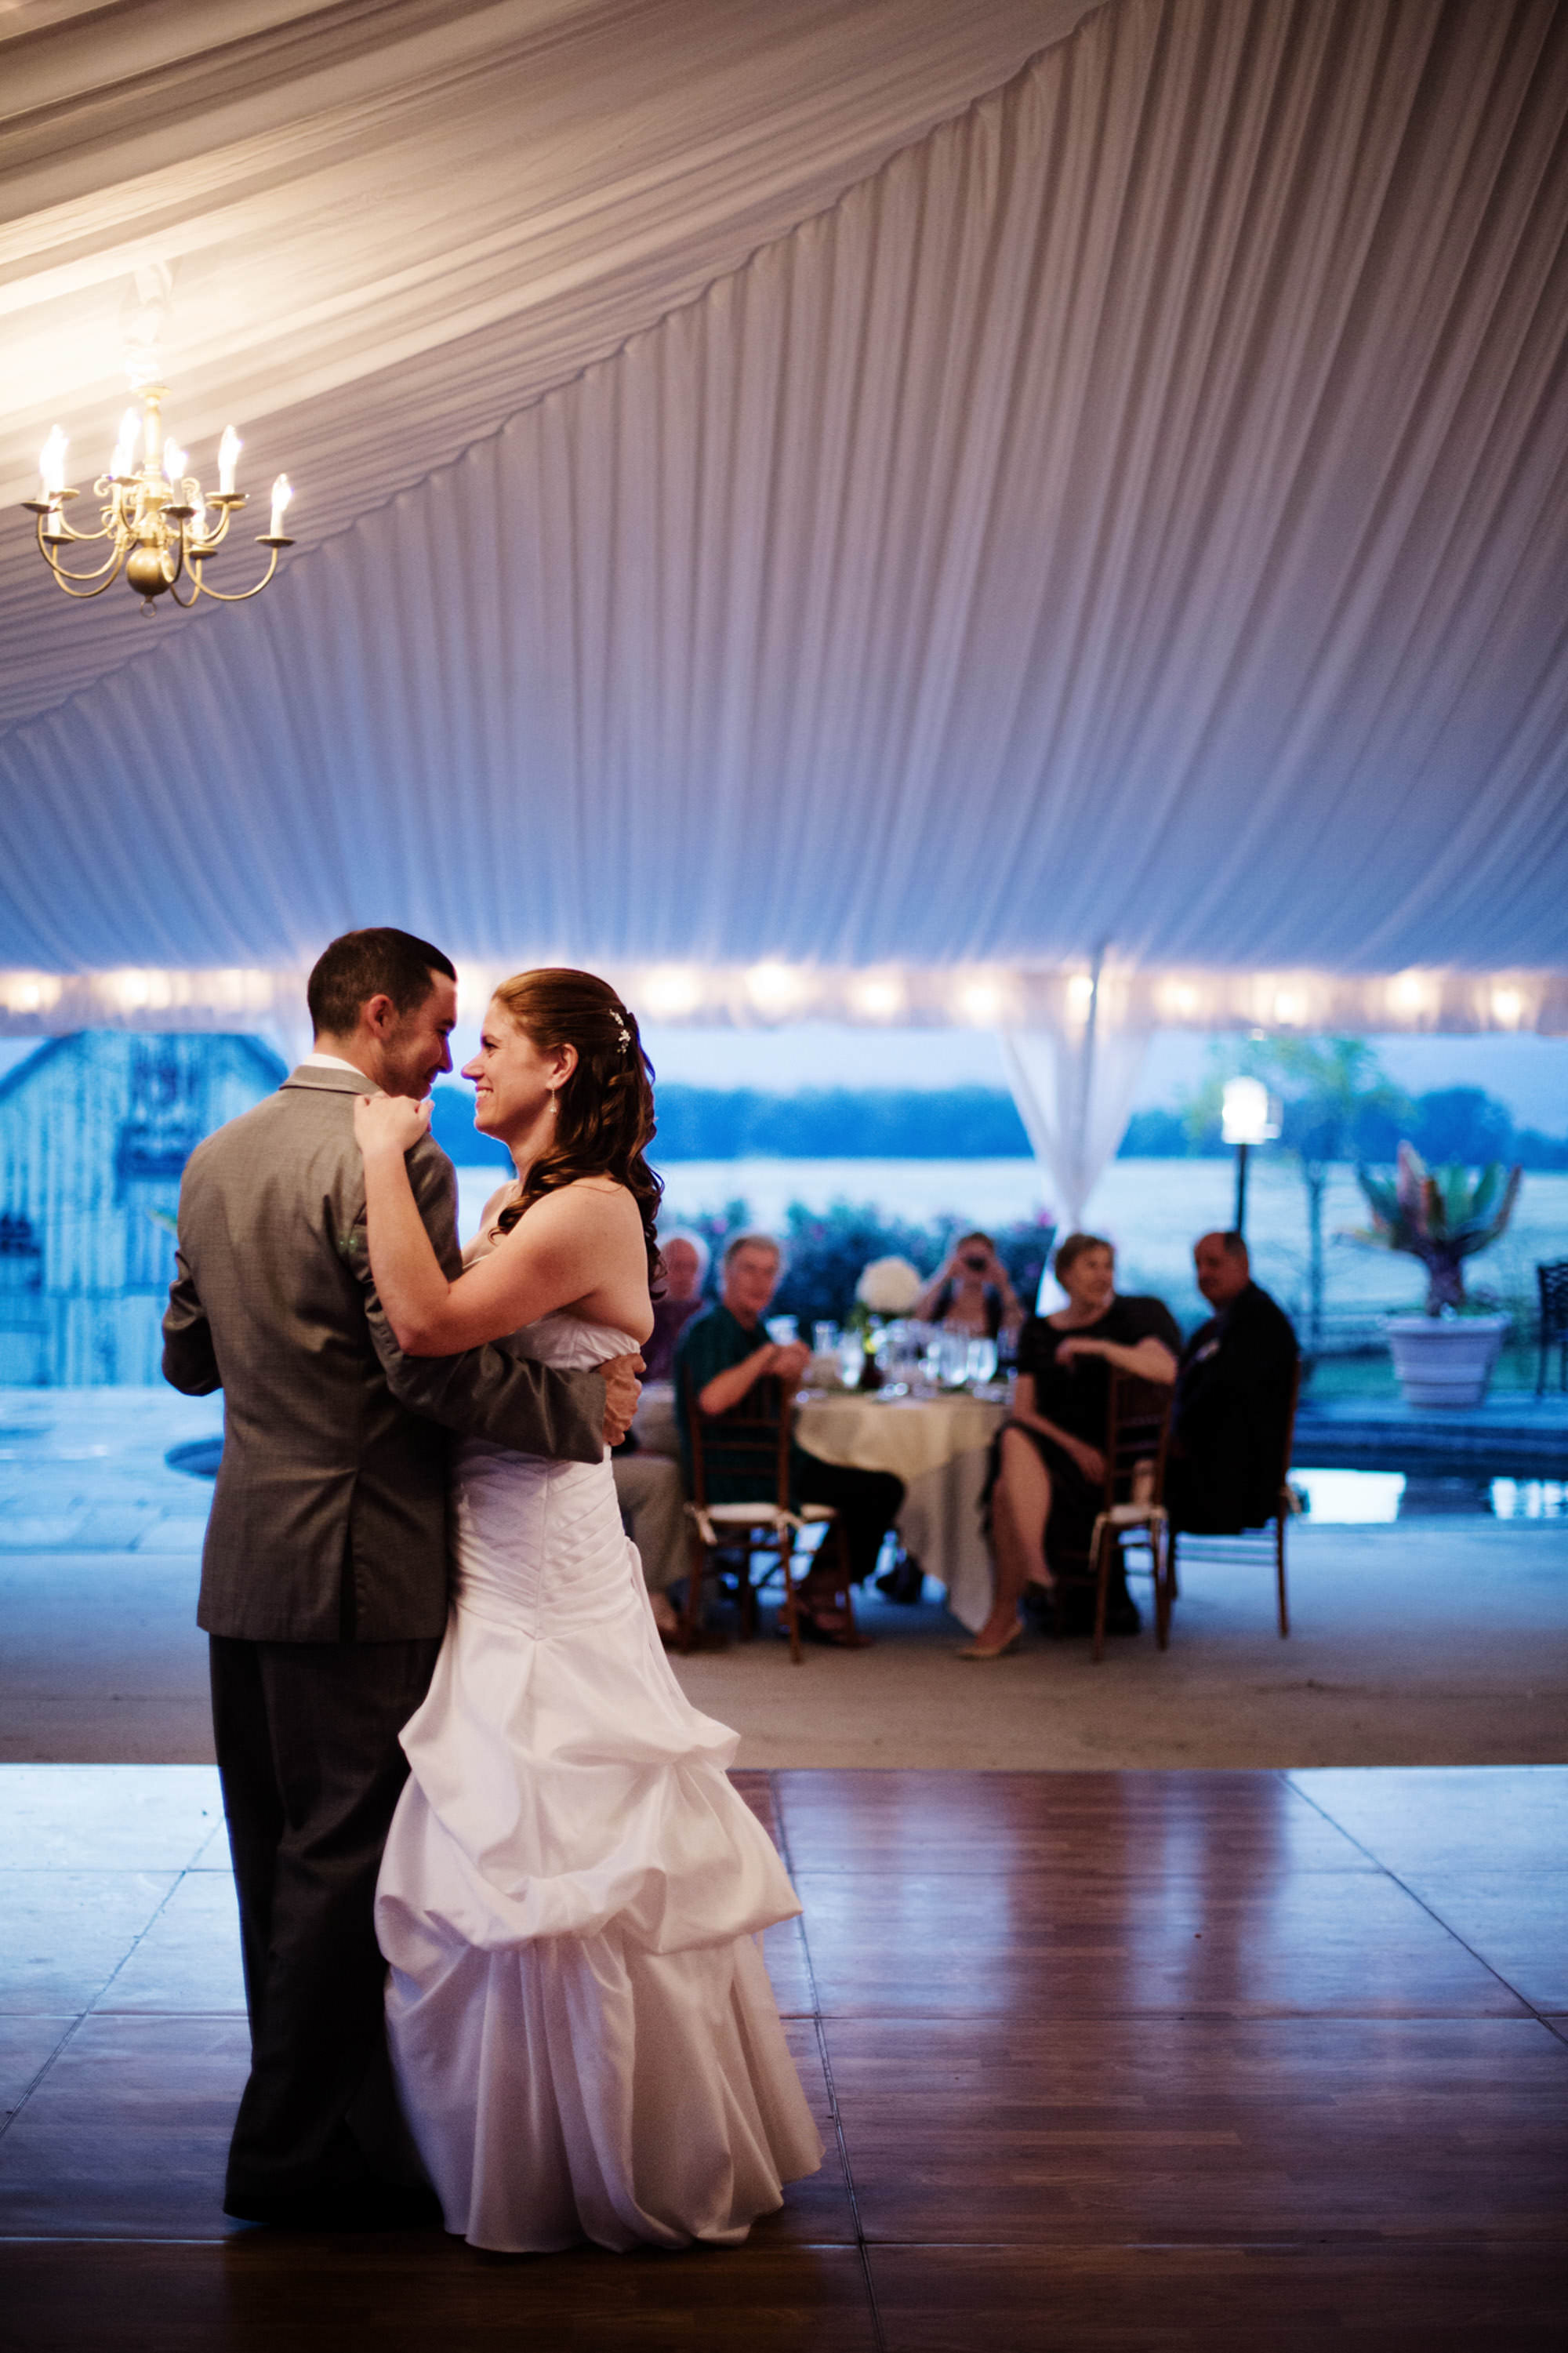 The couple enjoys their first dance in the tented reception of their Comus Inn wedding.